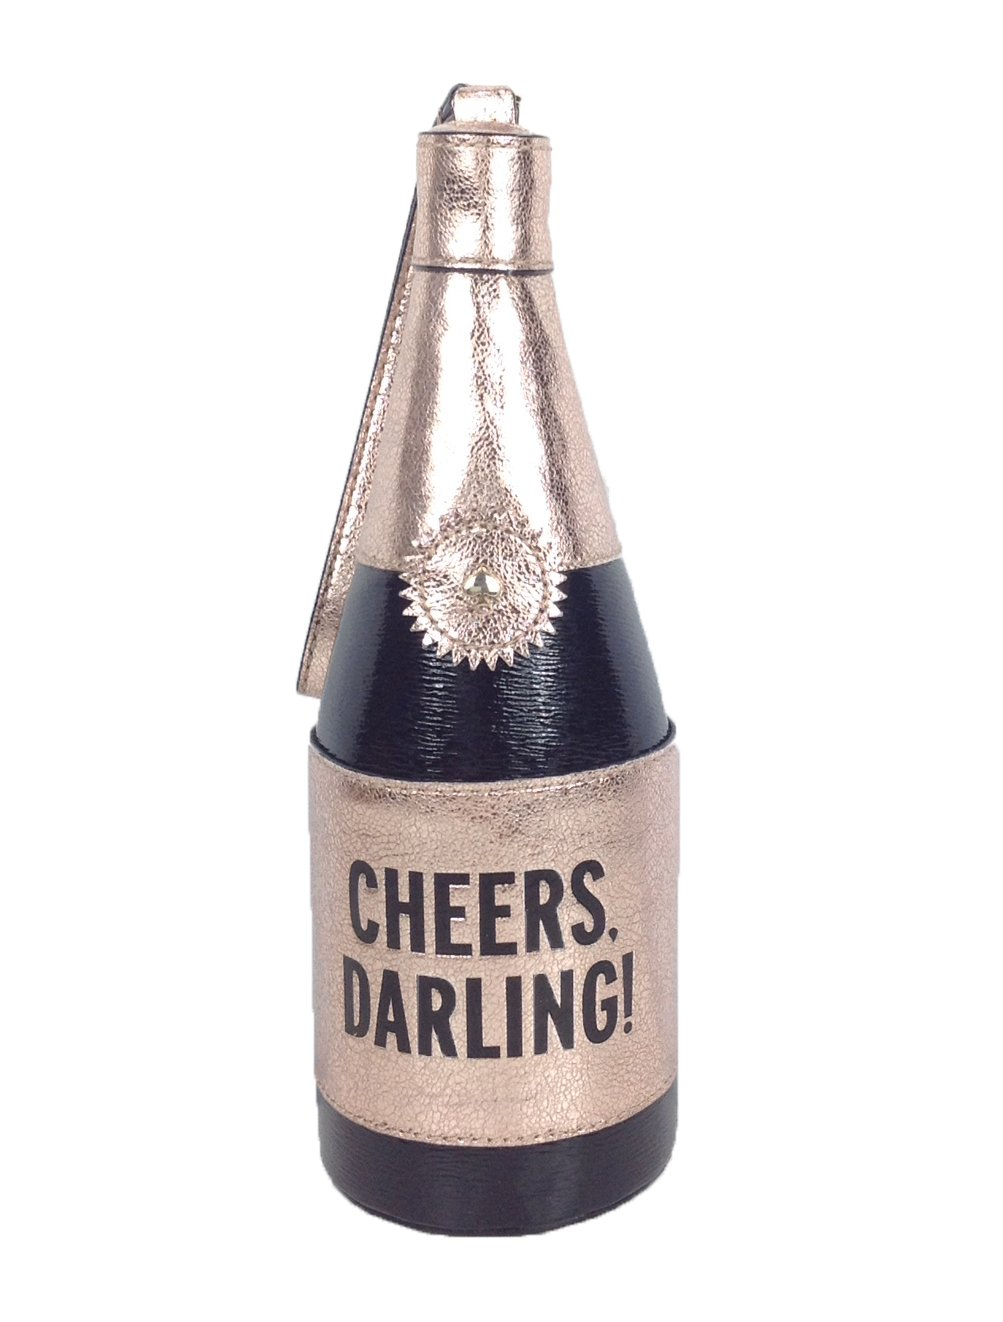 Kate Spade Champagne Bottle Wristlet Cheers Darling Clutch Black Rose Gold by Kate Spade New York